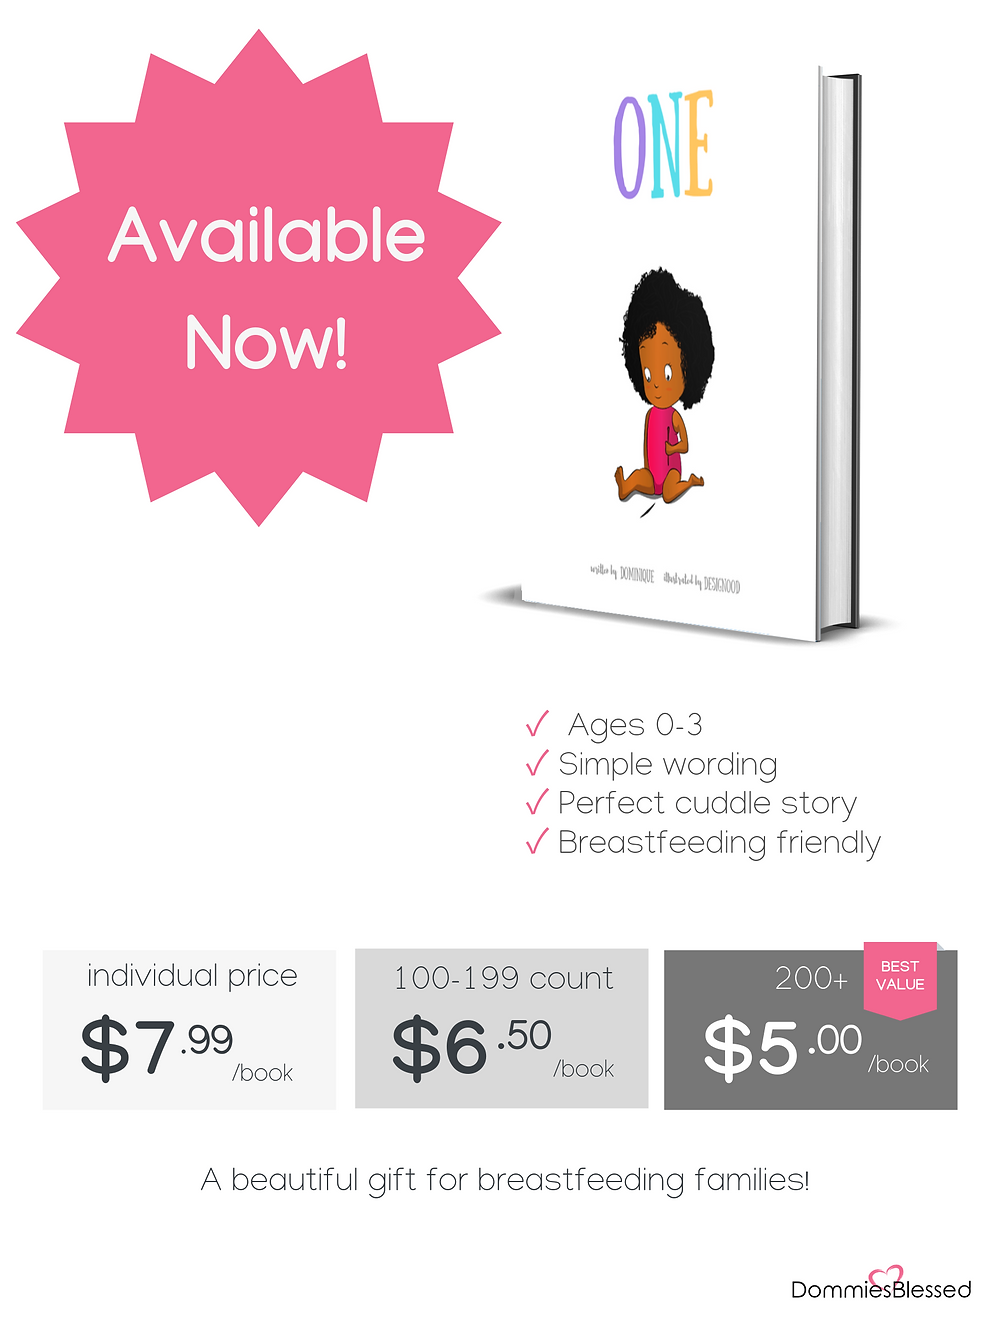 Breastfeeding Friendly Children's Book | DommiesBlessed